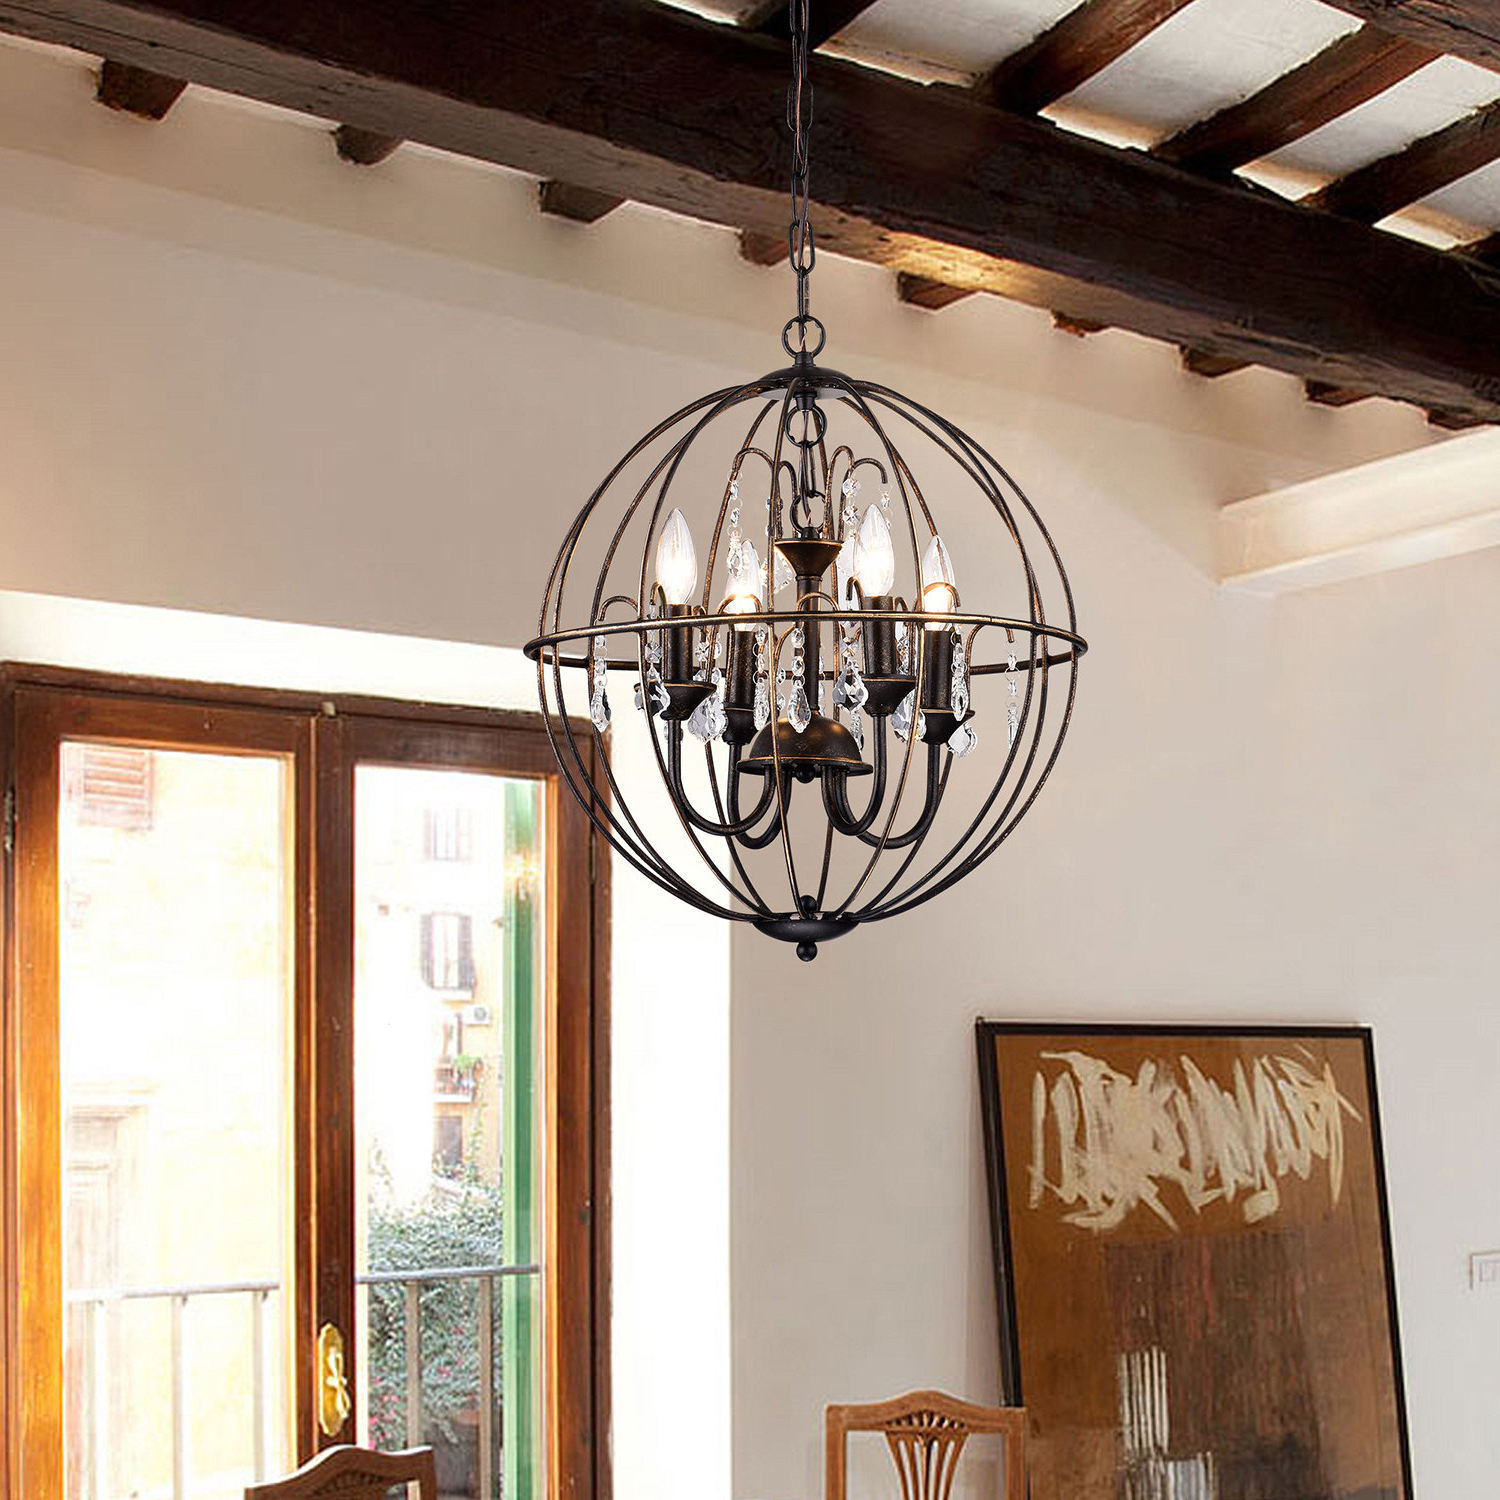 Leung 4 Light Chandelier Intended For Recent Kierra 4 Light Unique / Statement Chandeliers (View 15 of 25)